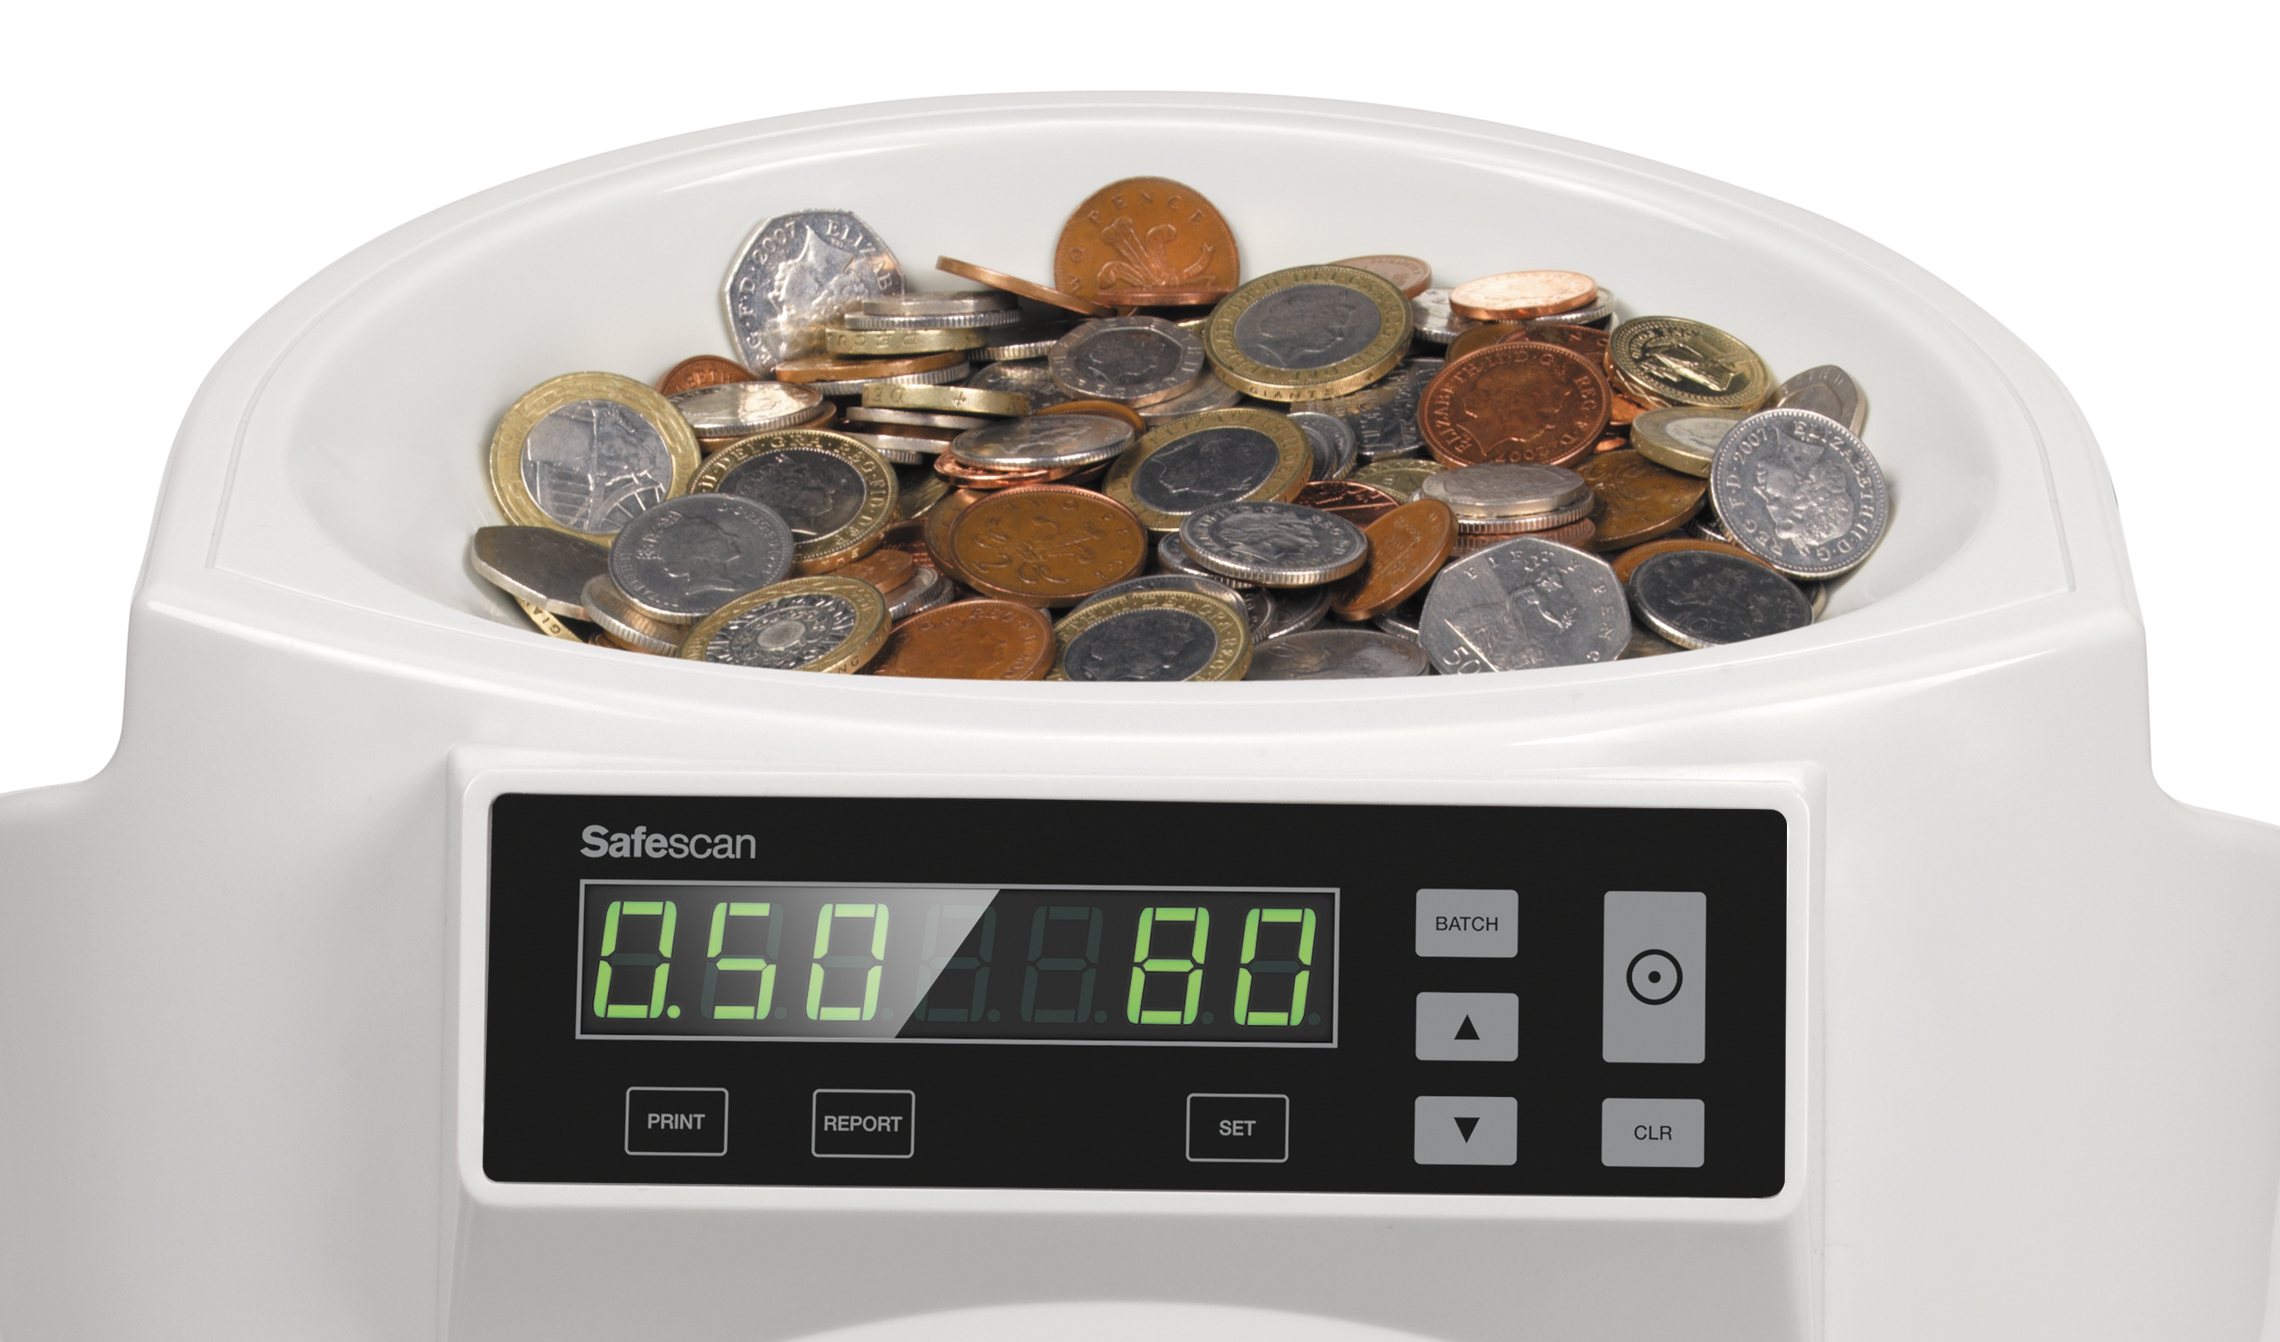 safescan-1250-eur-coin-hopper